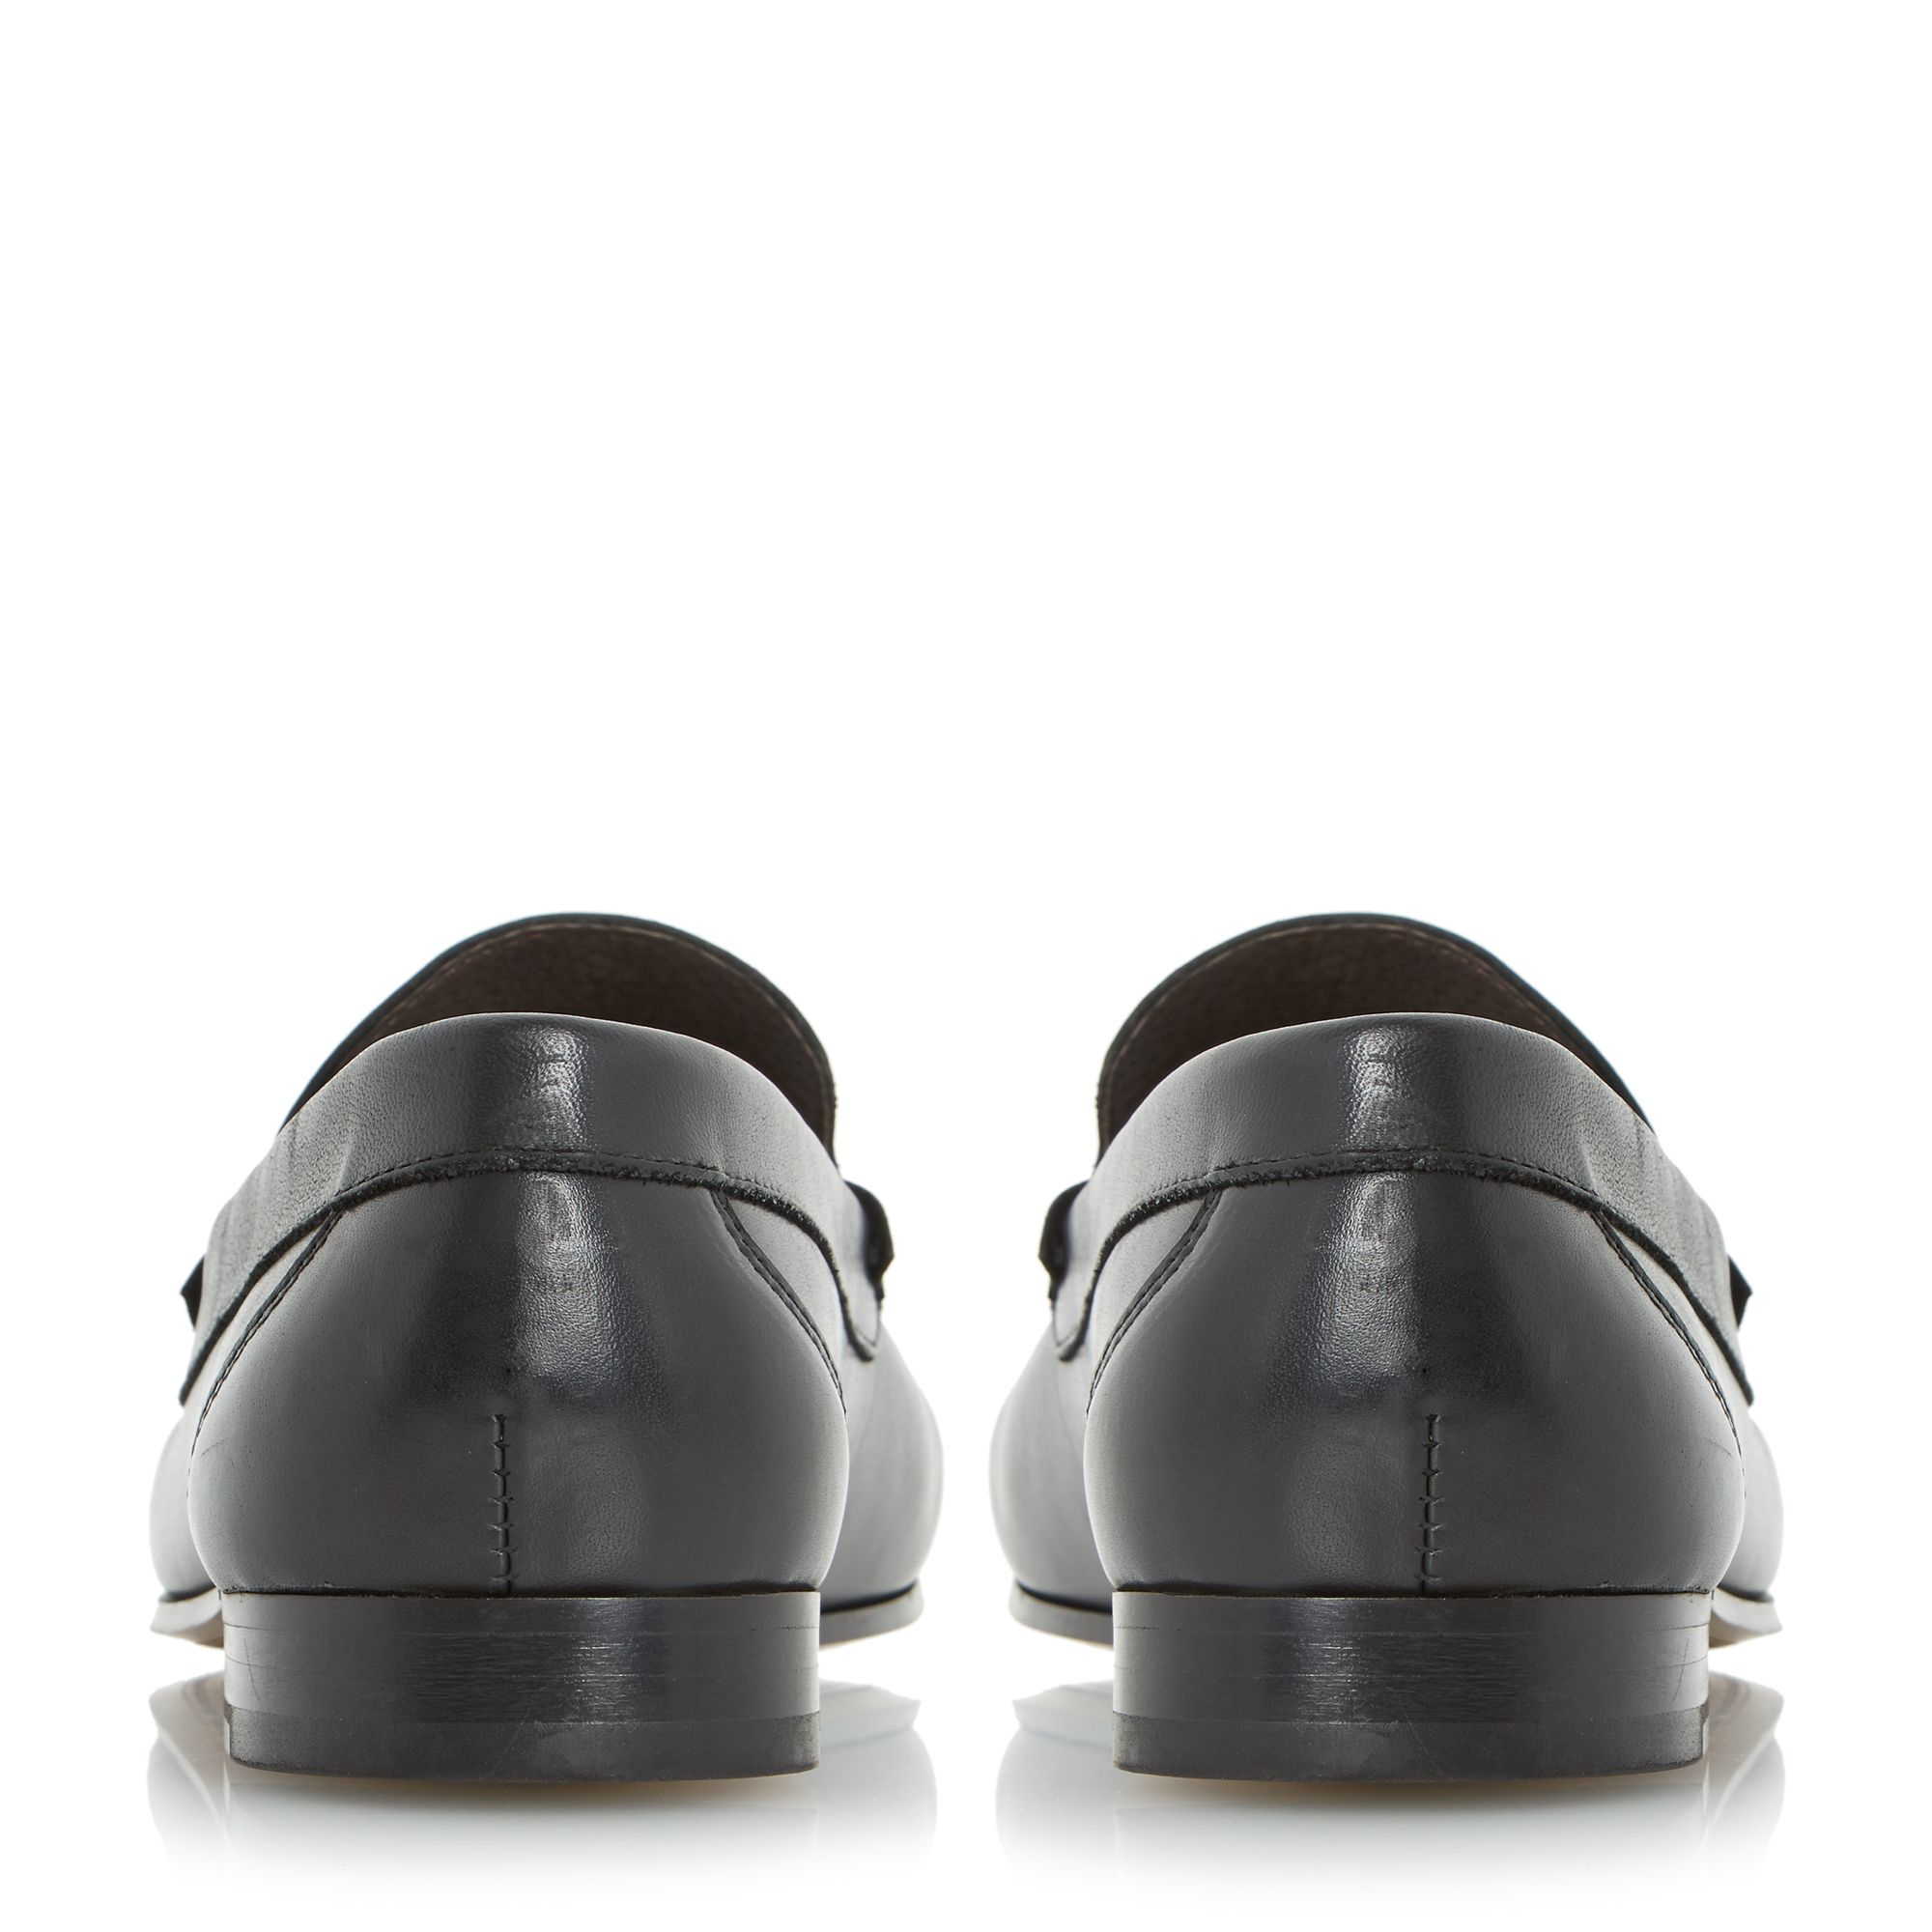 Roland Cartier Racer Moccasin Loafers In Black For Men Lyst